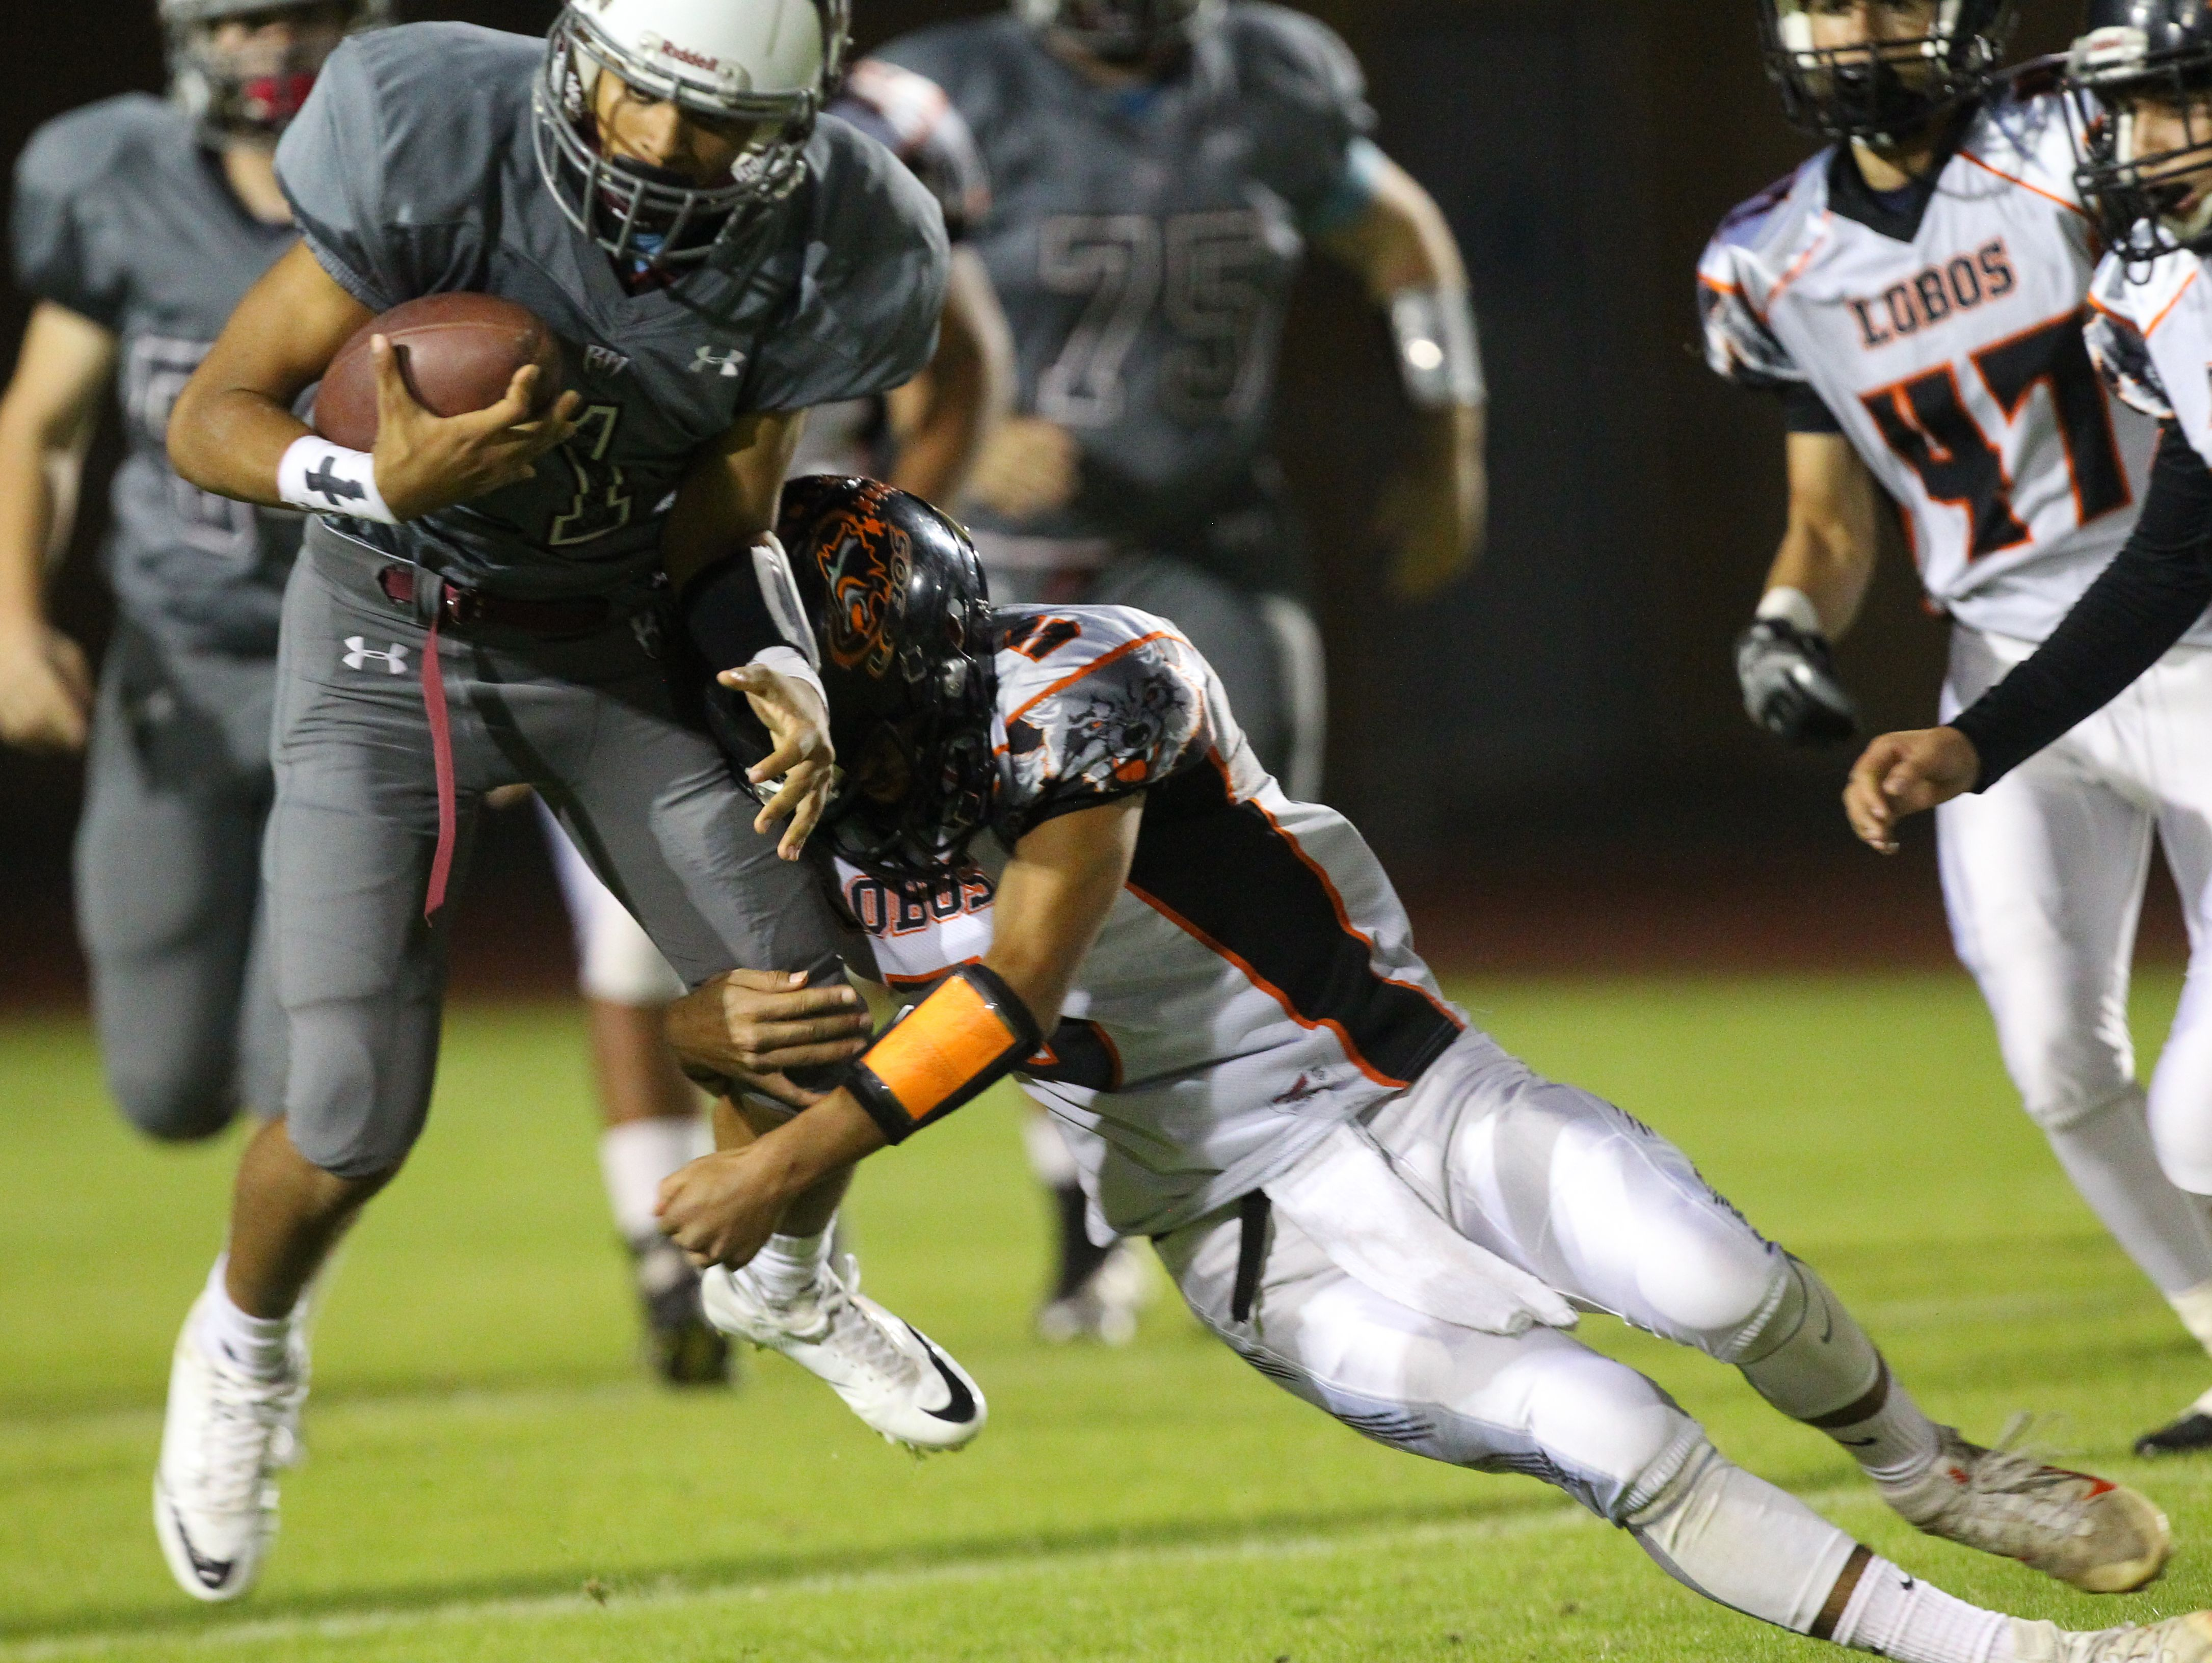 Marques Prior of Rancho Mirage High School runs for yardage in the third quarter of their CIF post-season game against Los Amigos High School at home.